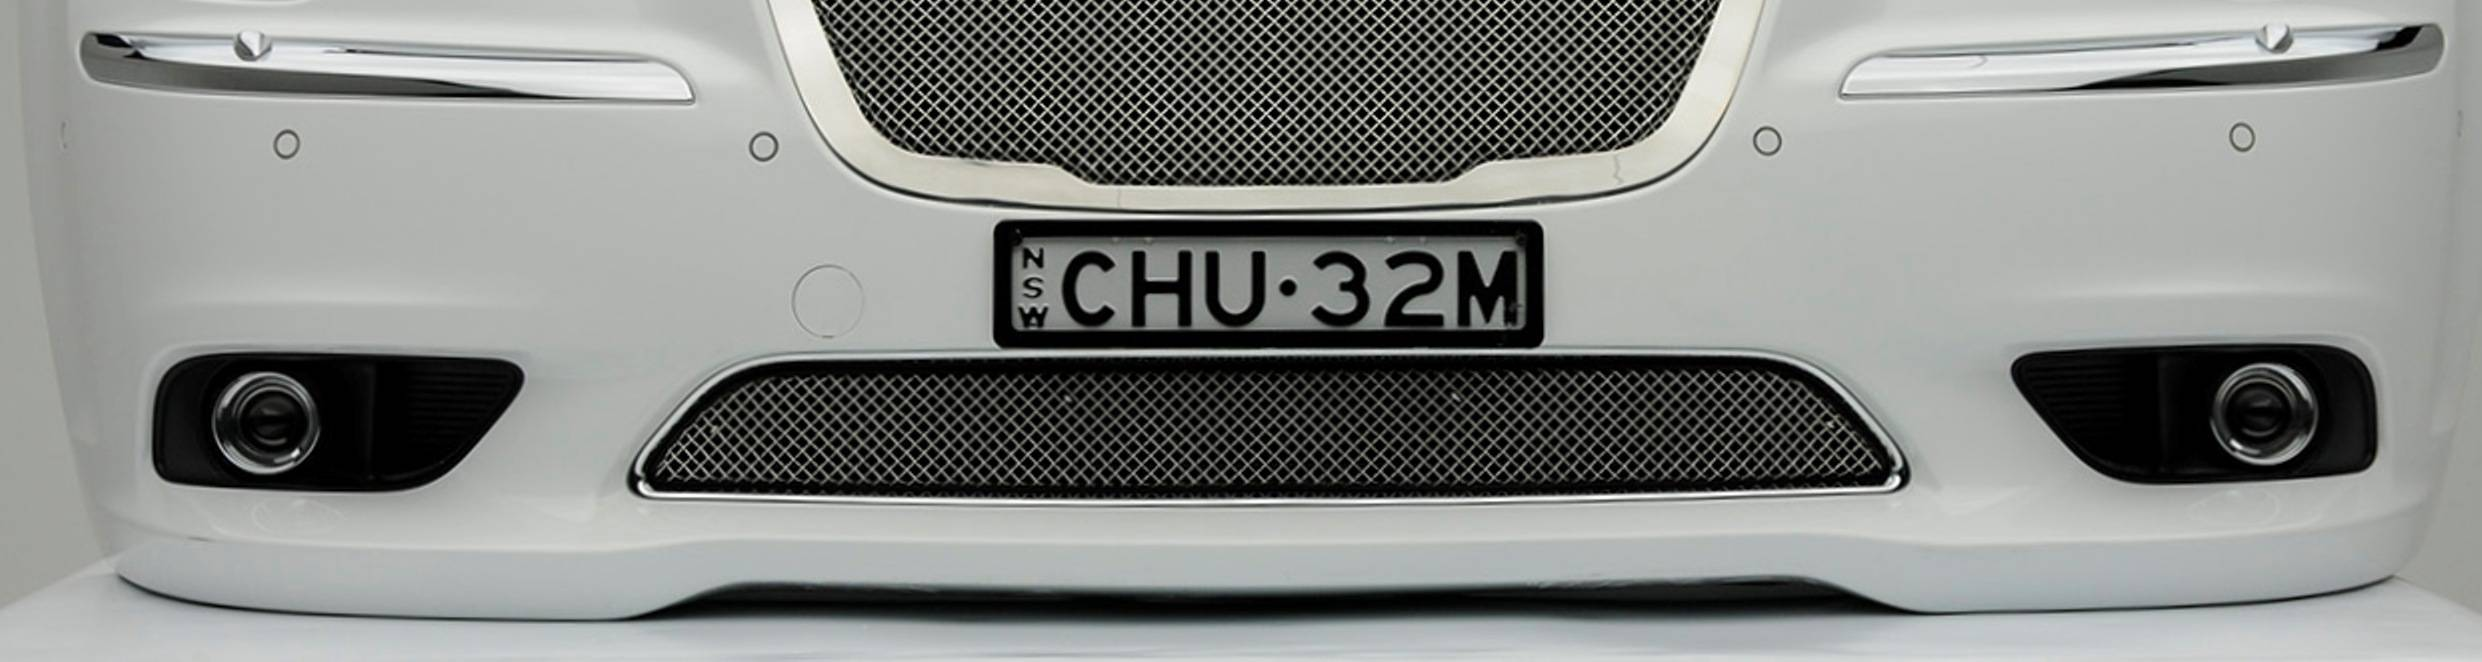 Chrysler 300, Sport Series, Formed Mesh Grille, Bumper, Overlay, 1 Pc, Triple Chrome Plated Stainless Steel, for Australian Model